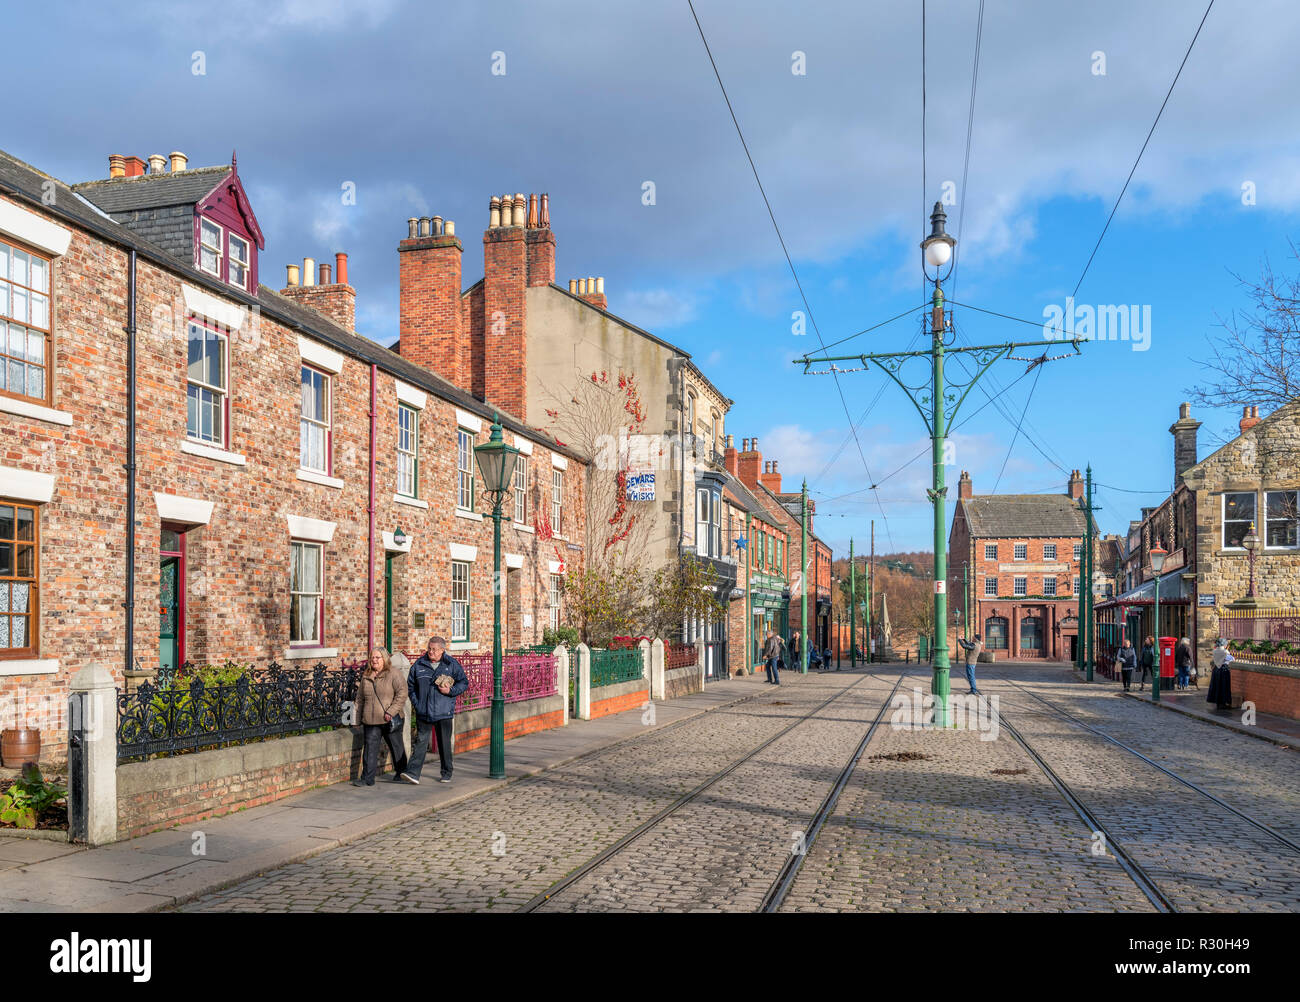 Shops on the High Street in the 1900s Town, Beamish Open Air Museum, Beamish, County Durham, England, UK - Stock Image